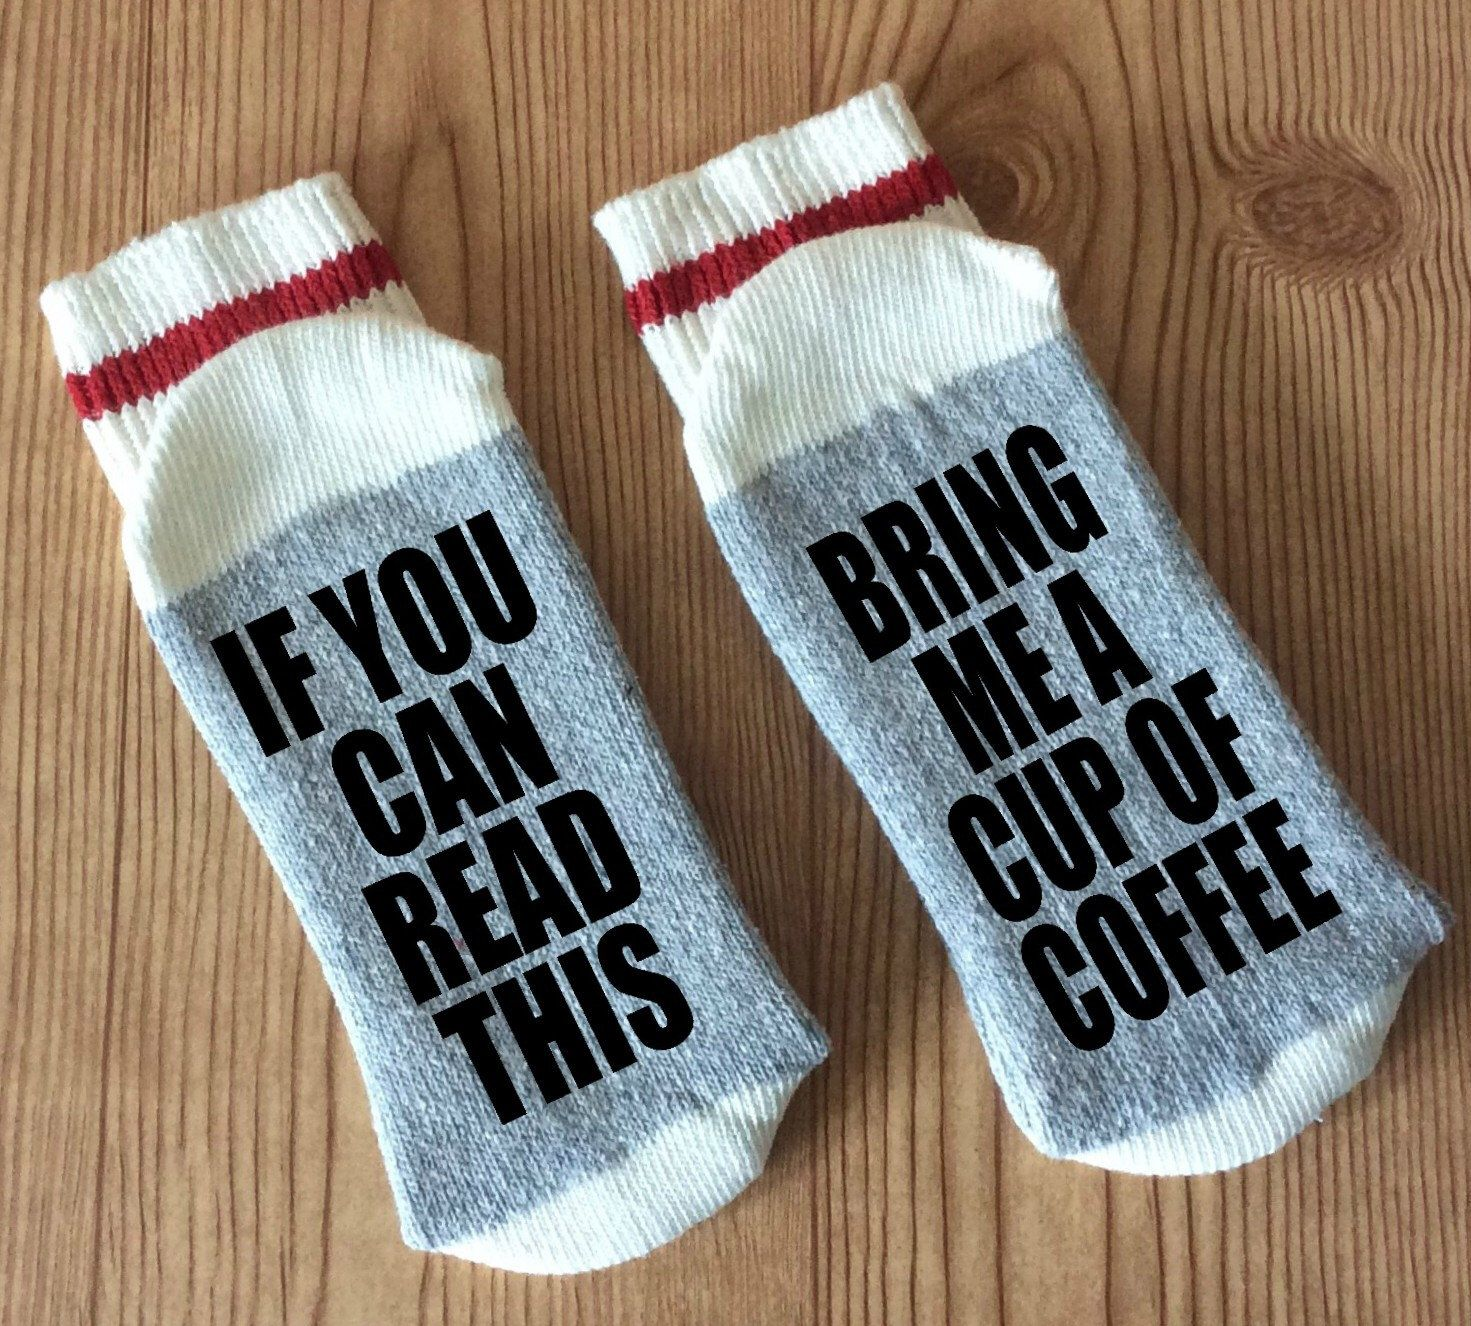 Bring Me a Cup of Coffee - If You Can Read This Socks by ...